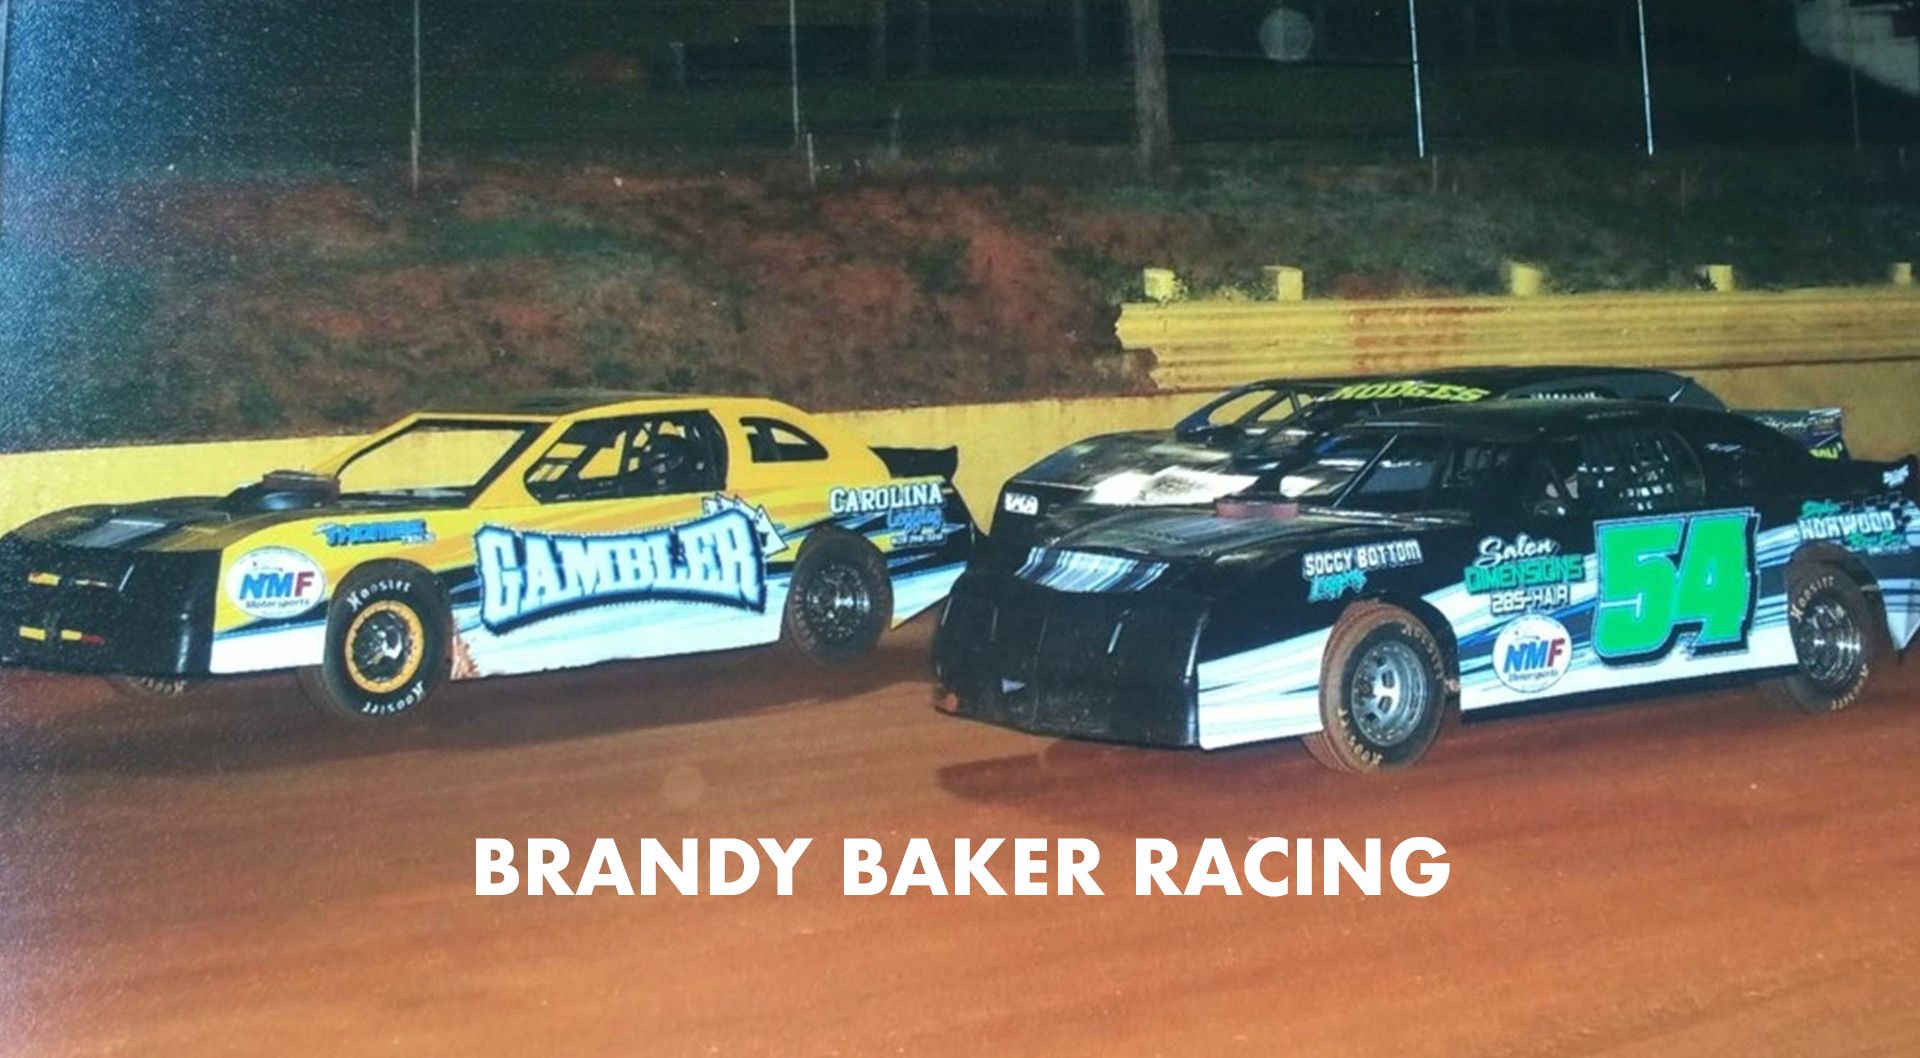 BRANDY BAKER RACING.jpg